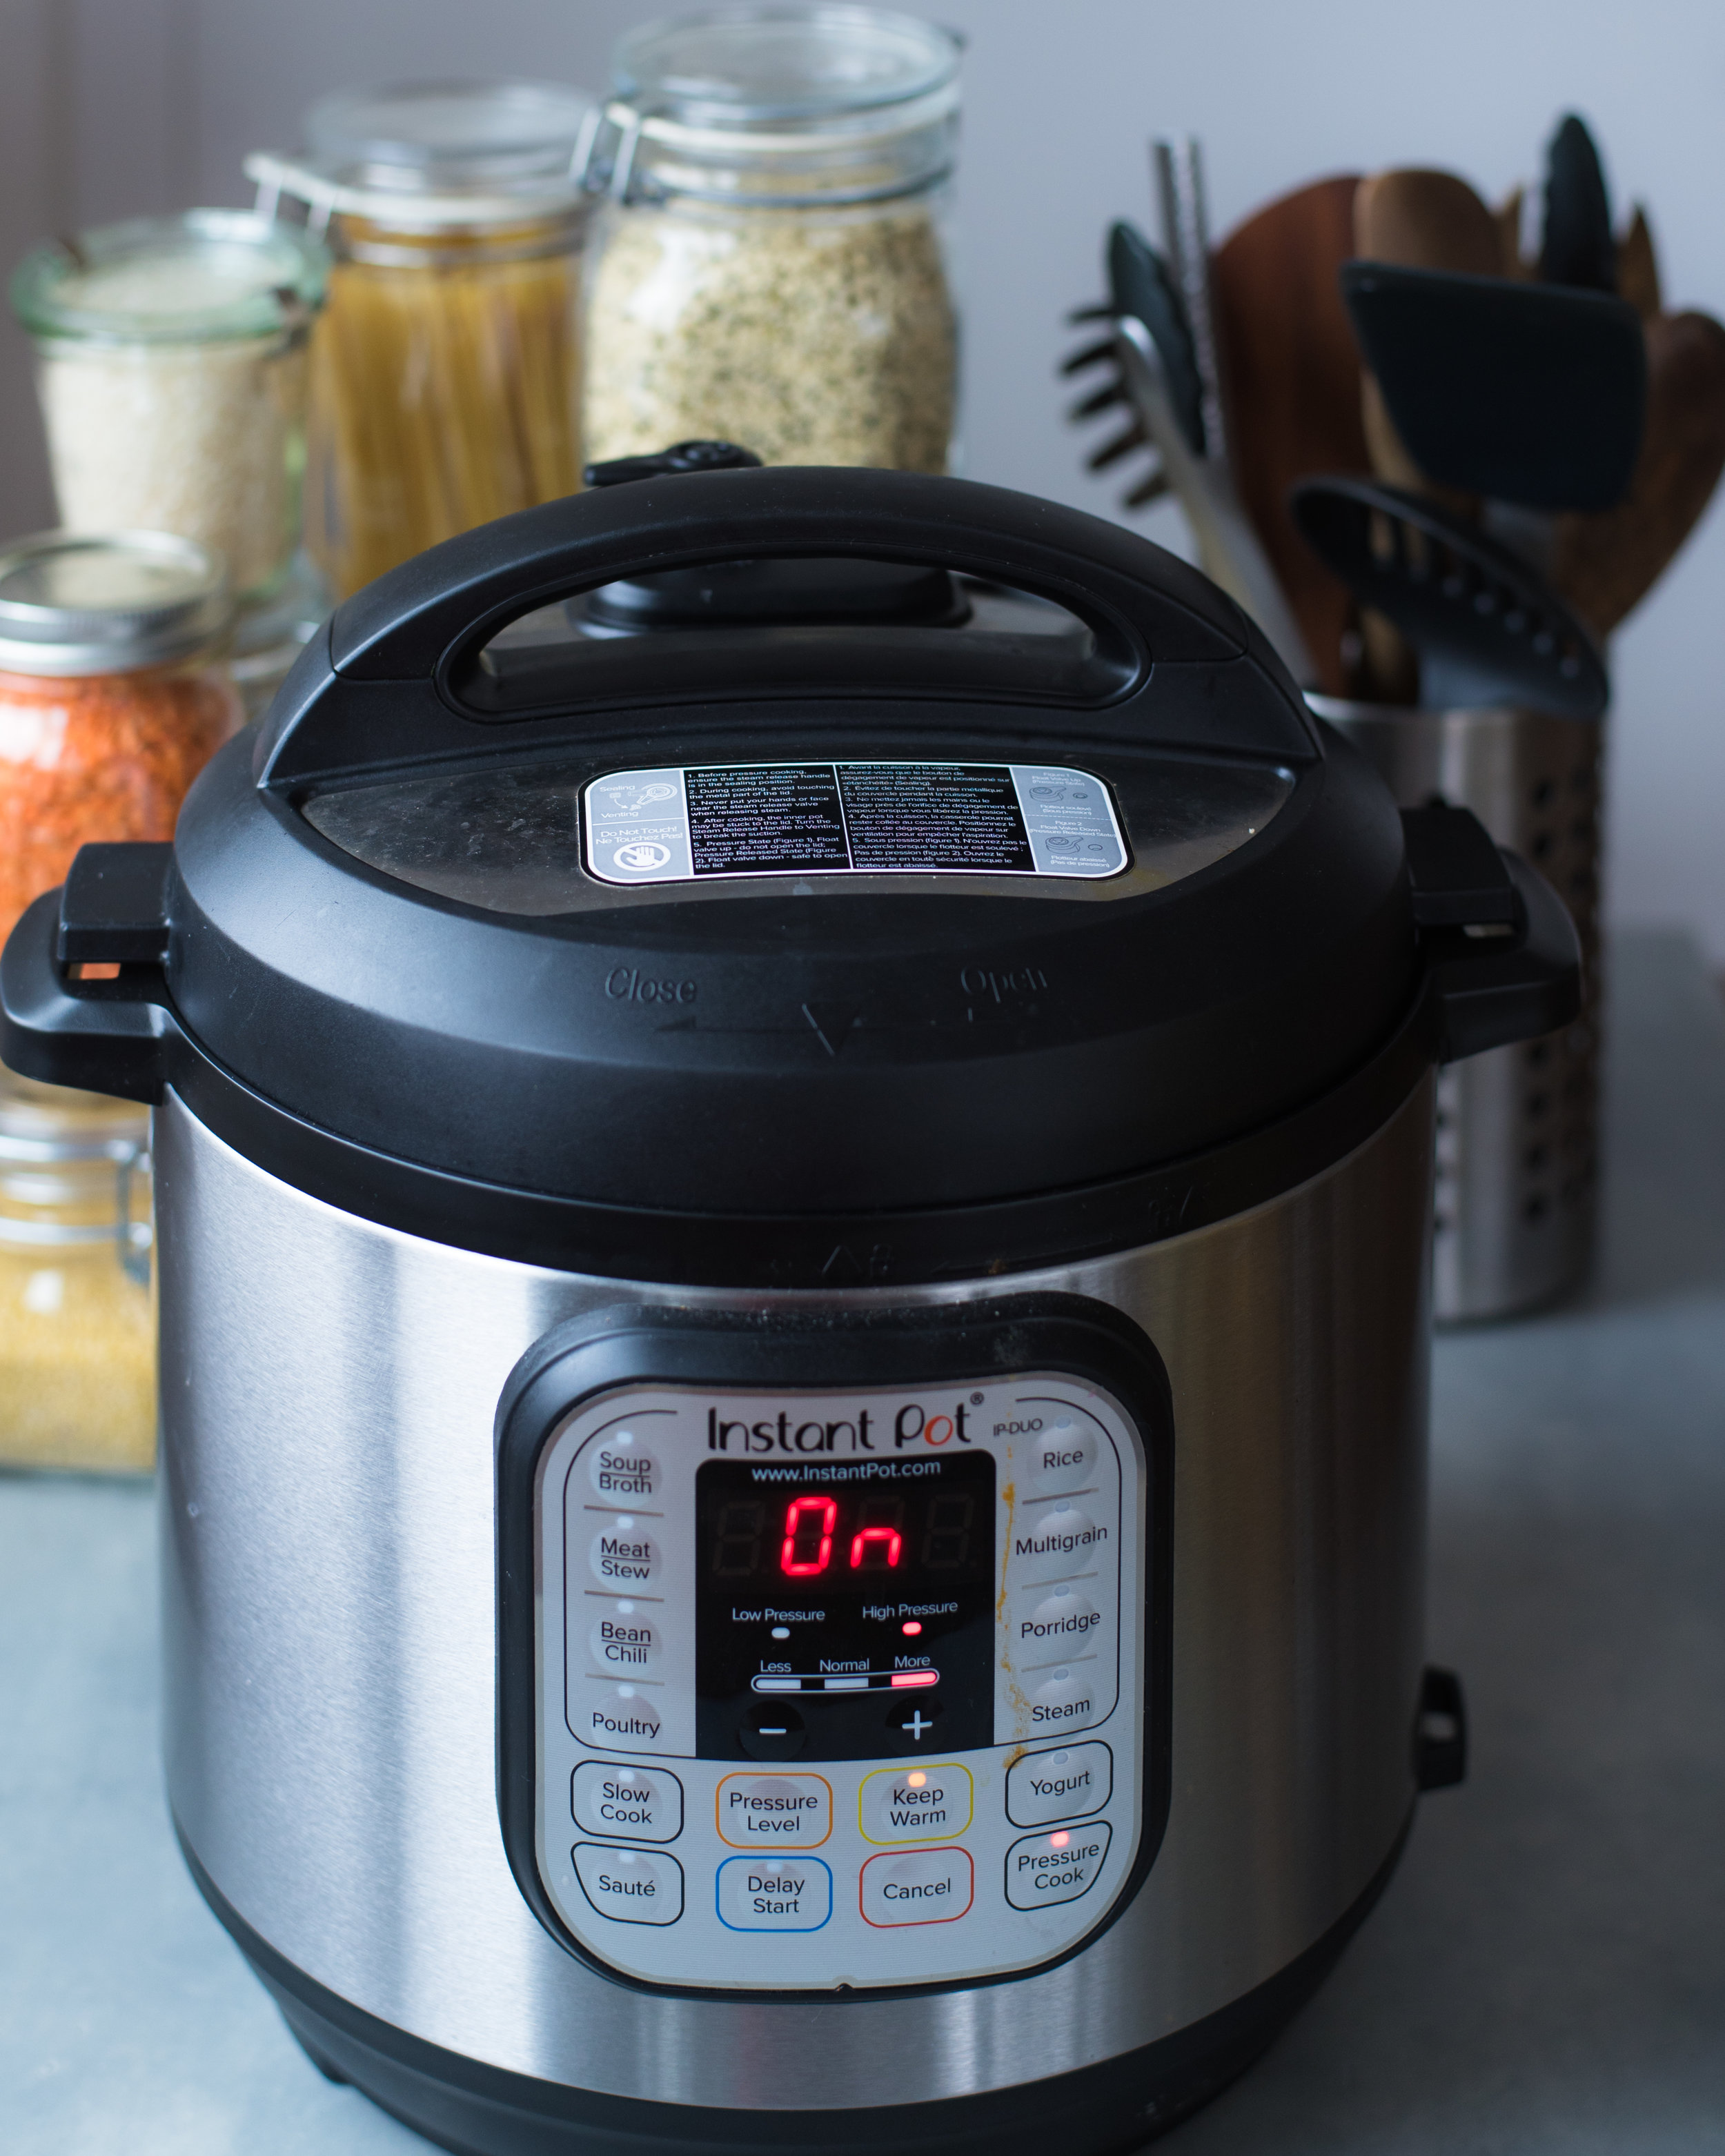 Instant Pot DUO60 - This is the gift for any home cook. The Instant Pot makes cooking so much easier and quicker. It churns out soups and stews with incredible depth of flavor, turns fibrous vegetables into buttery goodness in no time, and makes mindblowingly good yogurts and cakes.Price: $69.95 on Amazon